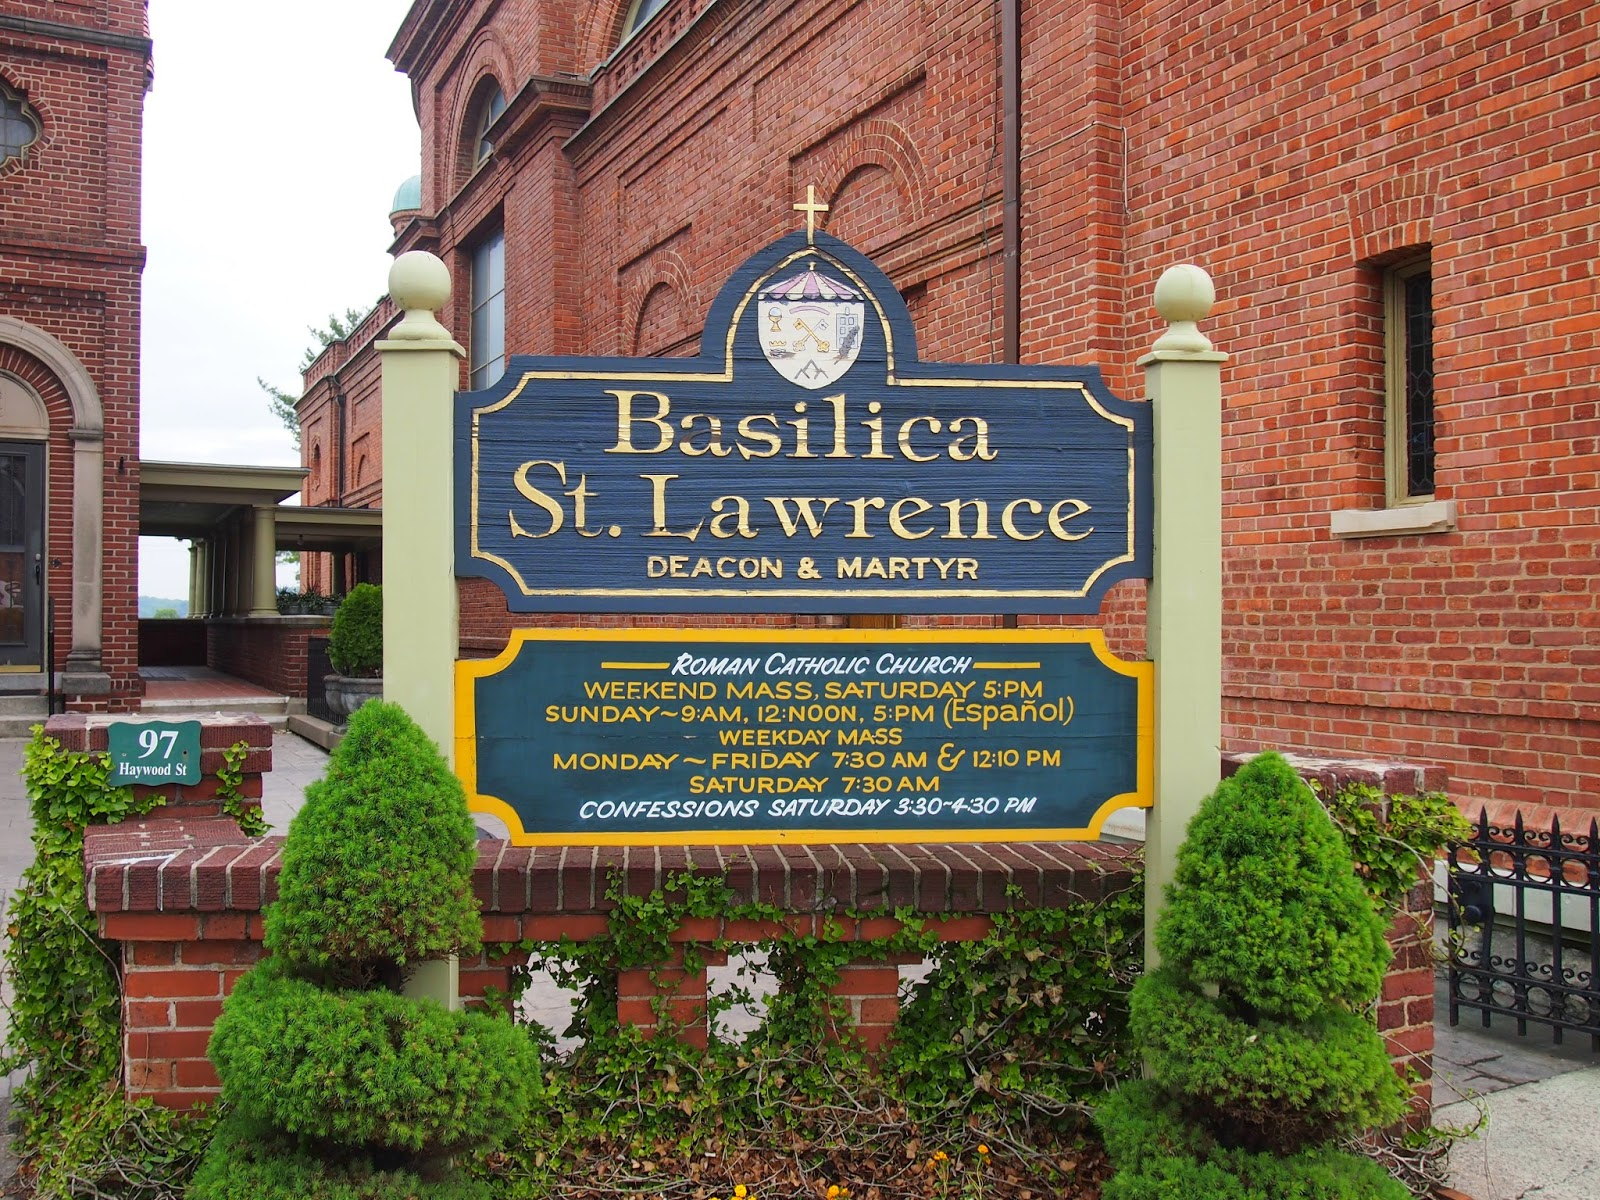 St. Lawrence Basillica in Asheville, North Carolina